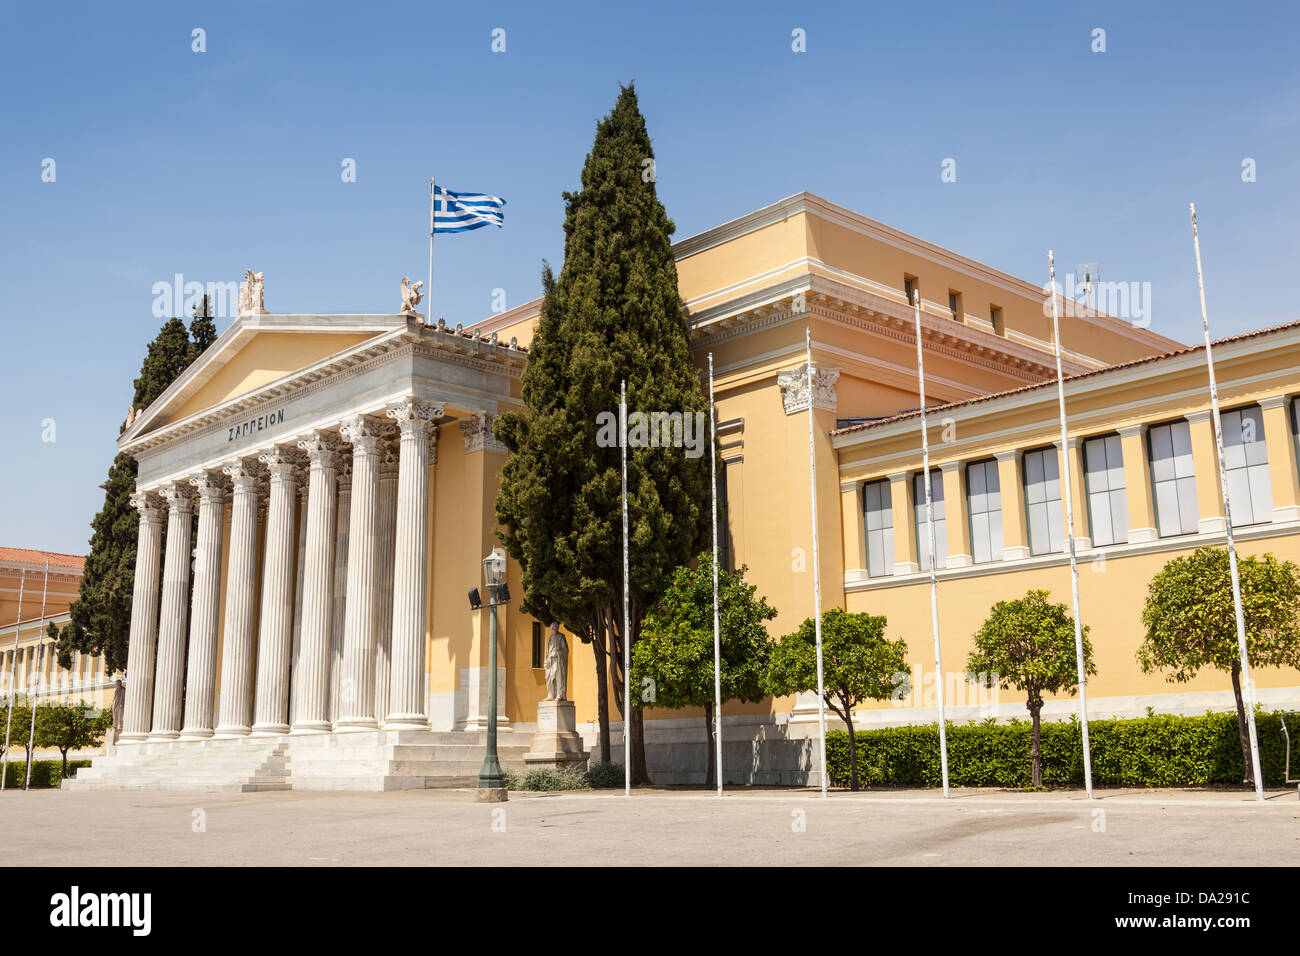 Athens National Gardens Stock Photos & Athens National Gardens Stock ...